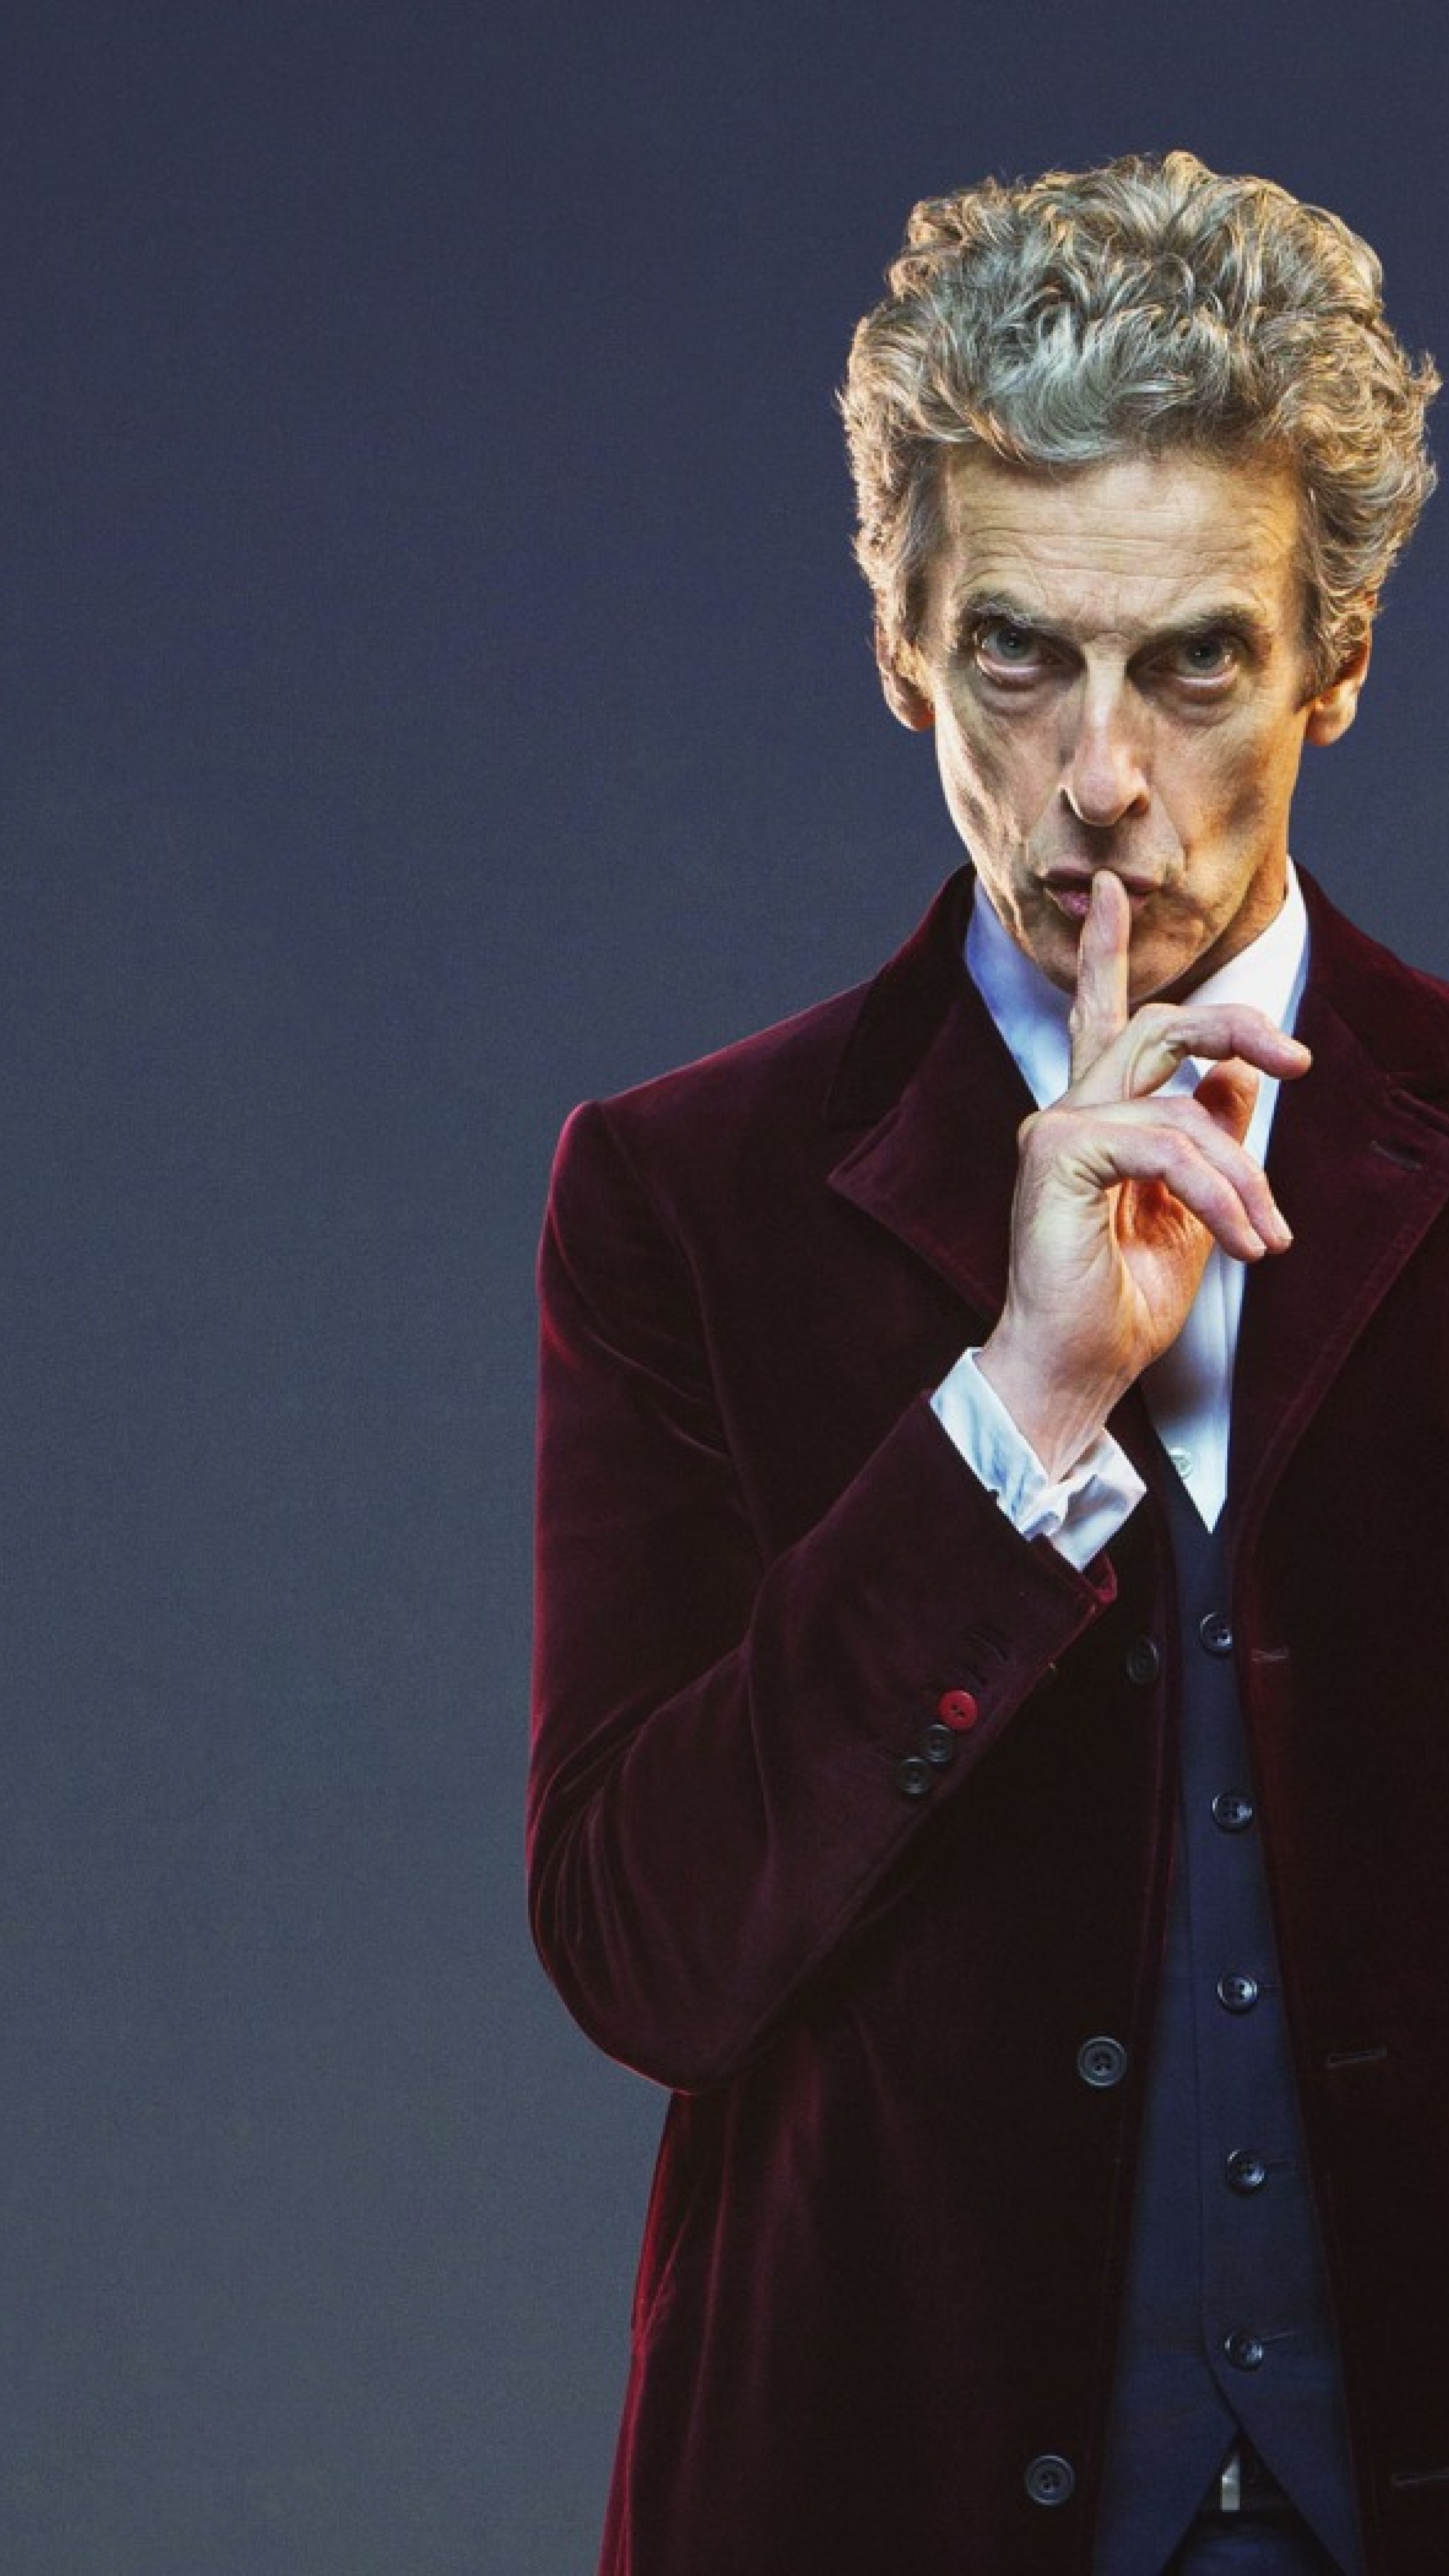 2160x3840 doctor who twelfth doctor peter capaldi Sony Xperia X 2160x3840